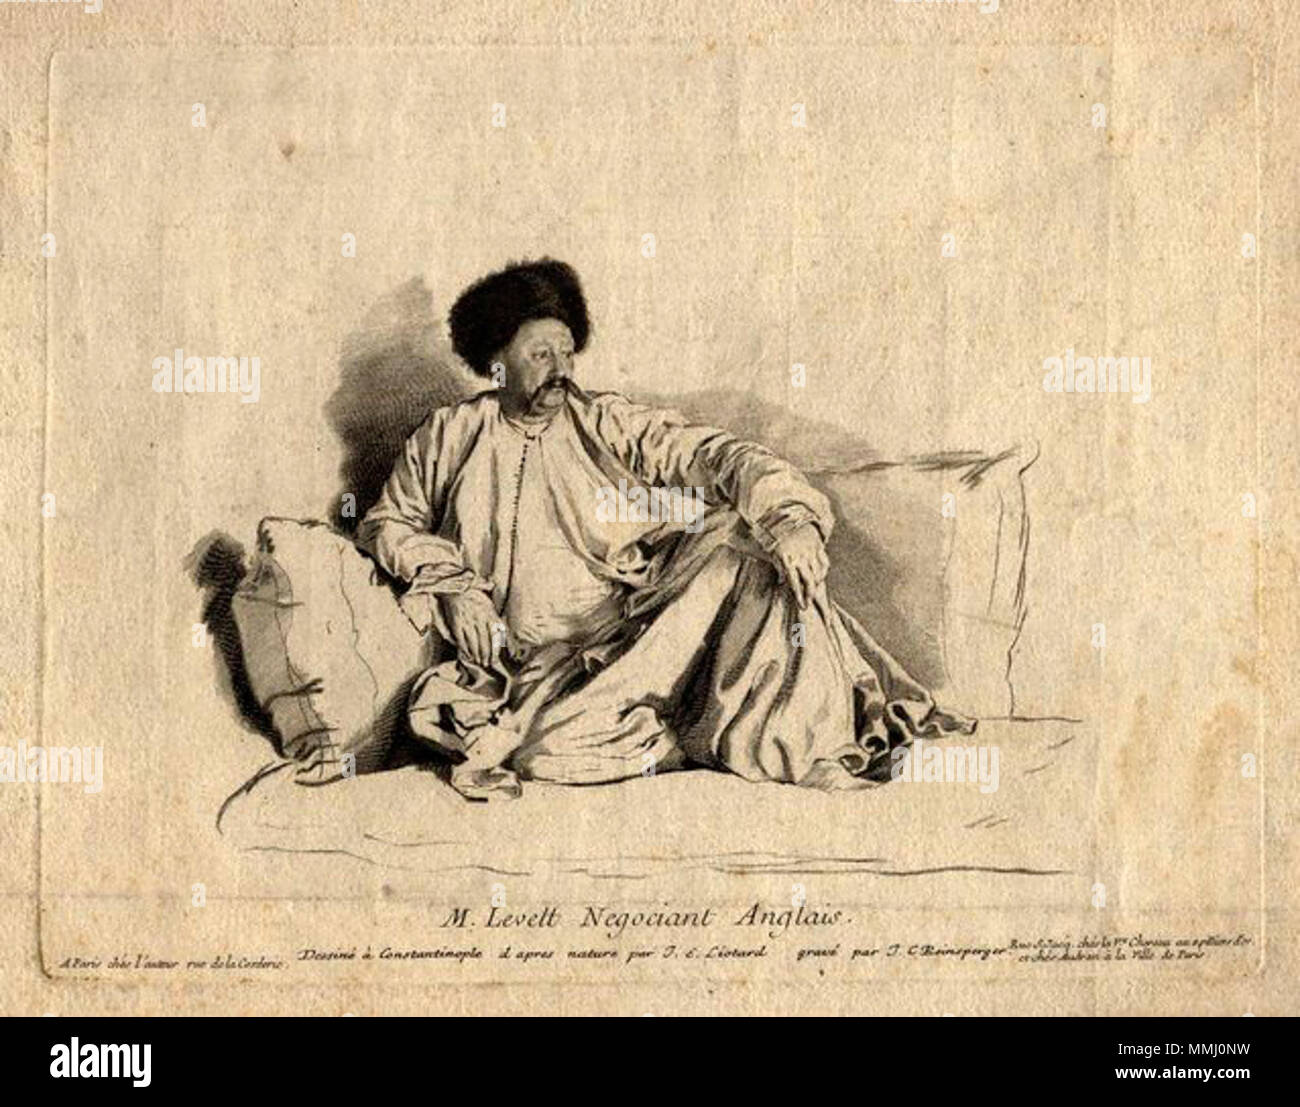 .  English: Portrait of English Turkey merchant Francis Levett, attired in Turkish costume, after the painting by Jean Etienne Liotard in the Louvre Museum in Paris, line engraving by Johann Christoph von Reinsperger. 'M. Levett, Negociant Anglais' . Francis Levett of Nethersole, Kent, England, was chief representative of the Levant Company in Constantinople (Istanbul) from 1737–1750. Levett was also a benefactor of Morden College, London.  by; after Johann Christoph von Reinsperger; Jean Etienne Liotard,print,mid 18th century FrancisLevett - Stock Image